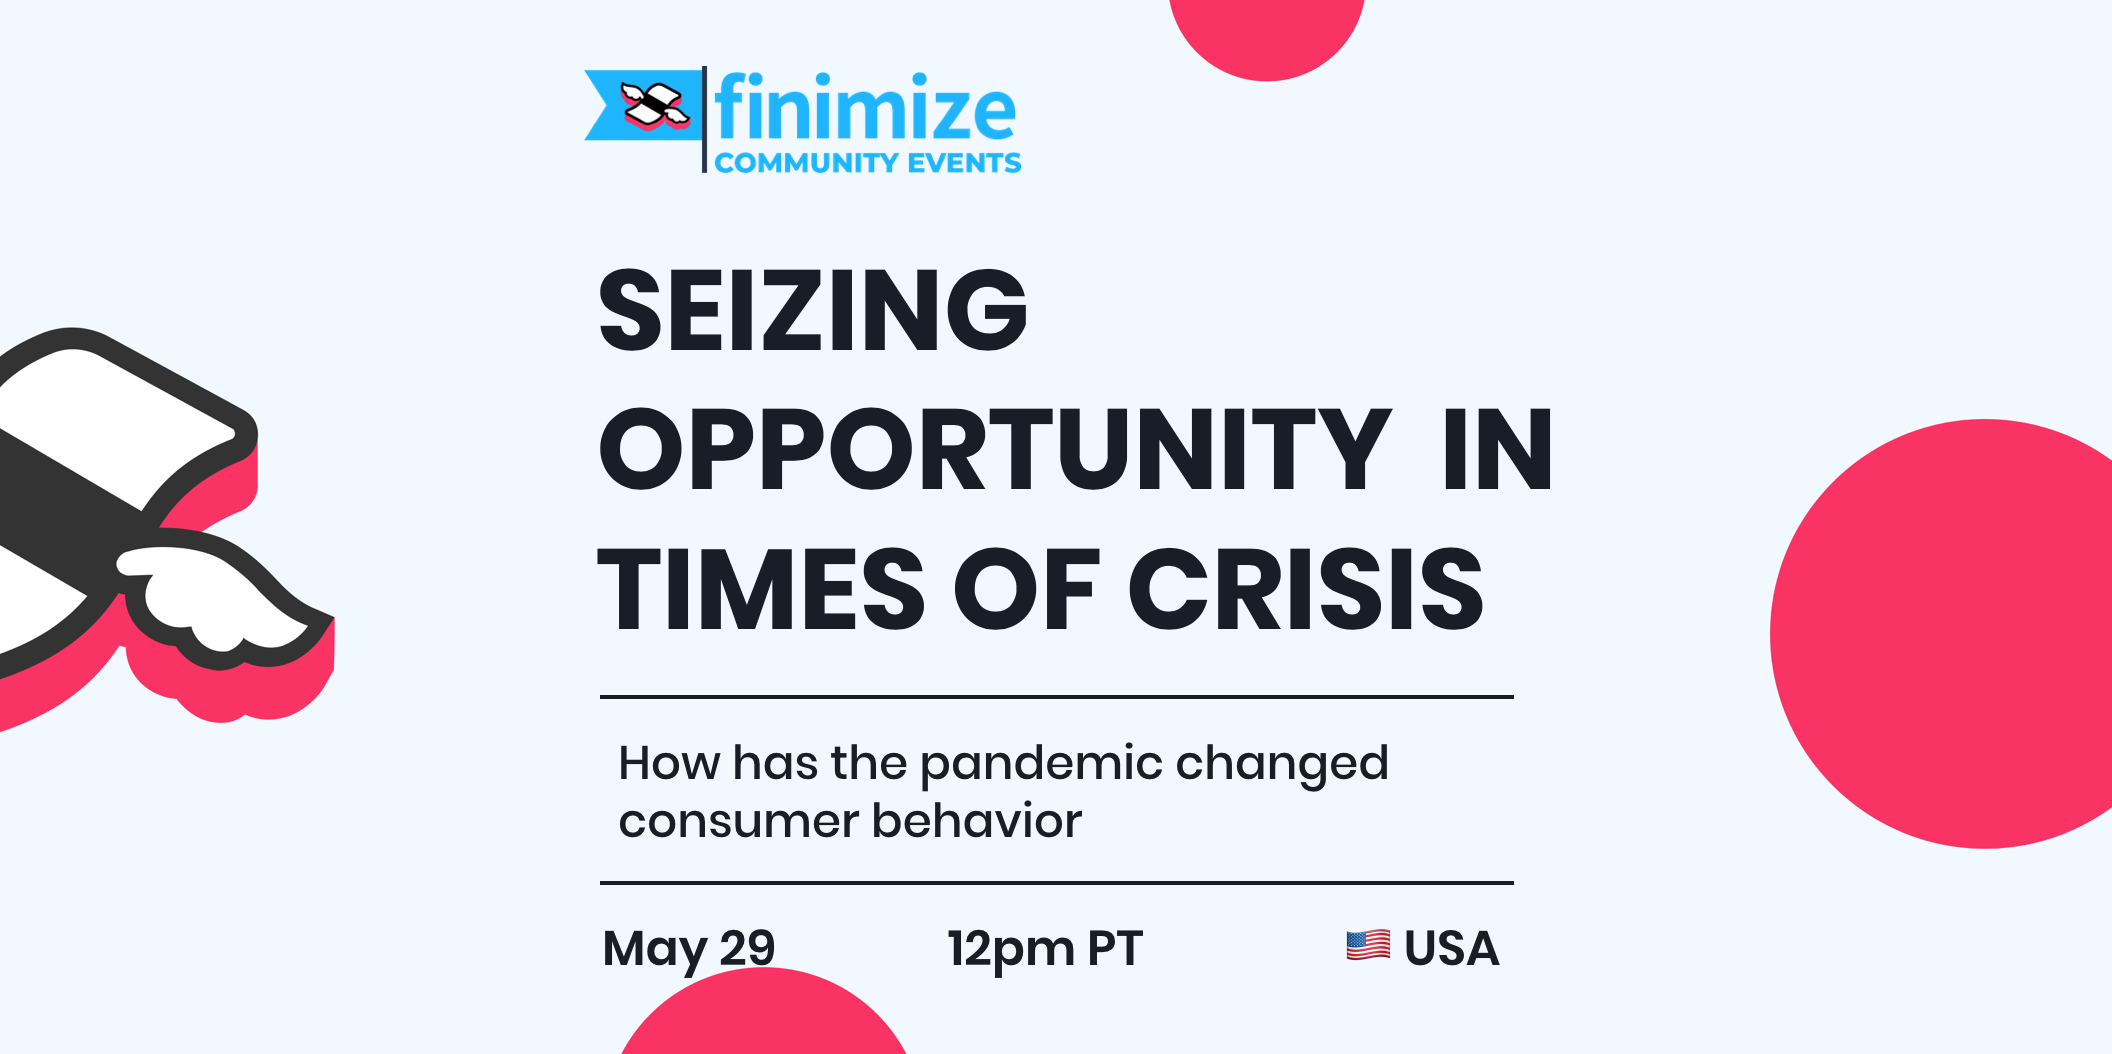 Seizing Opportunity in Times of Crisis